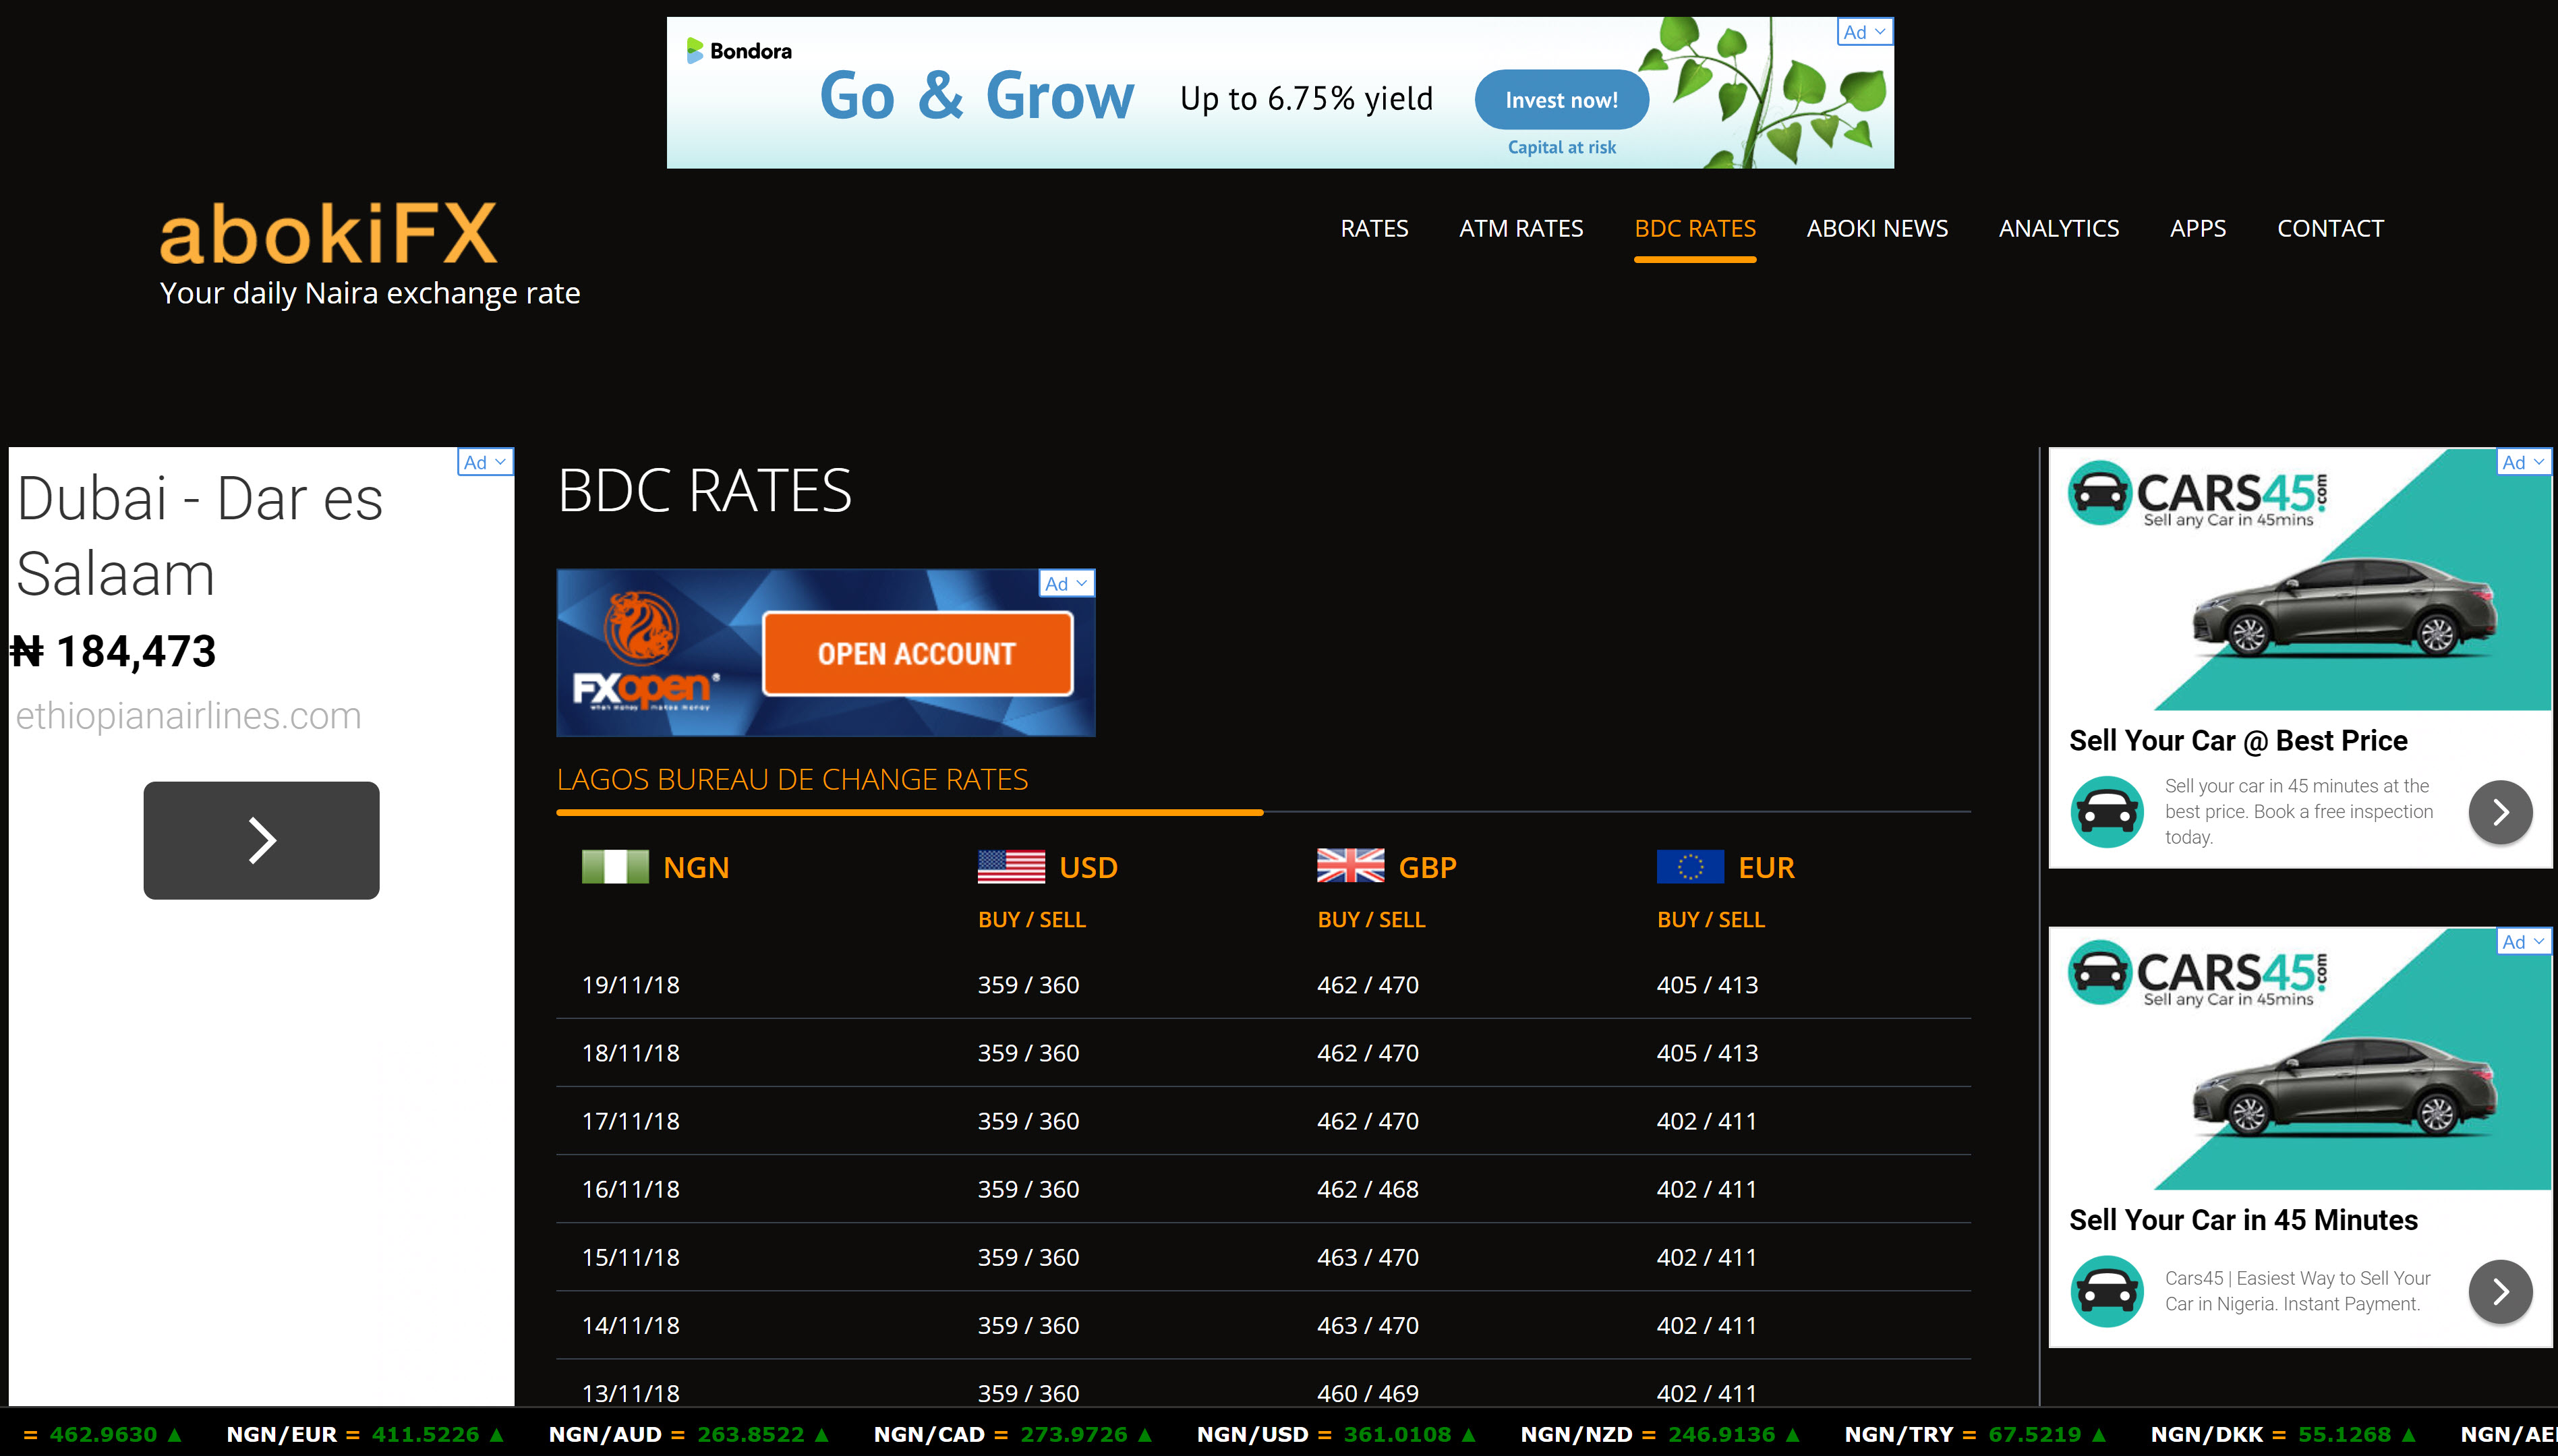 Black Market Fx Rates From Abok